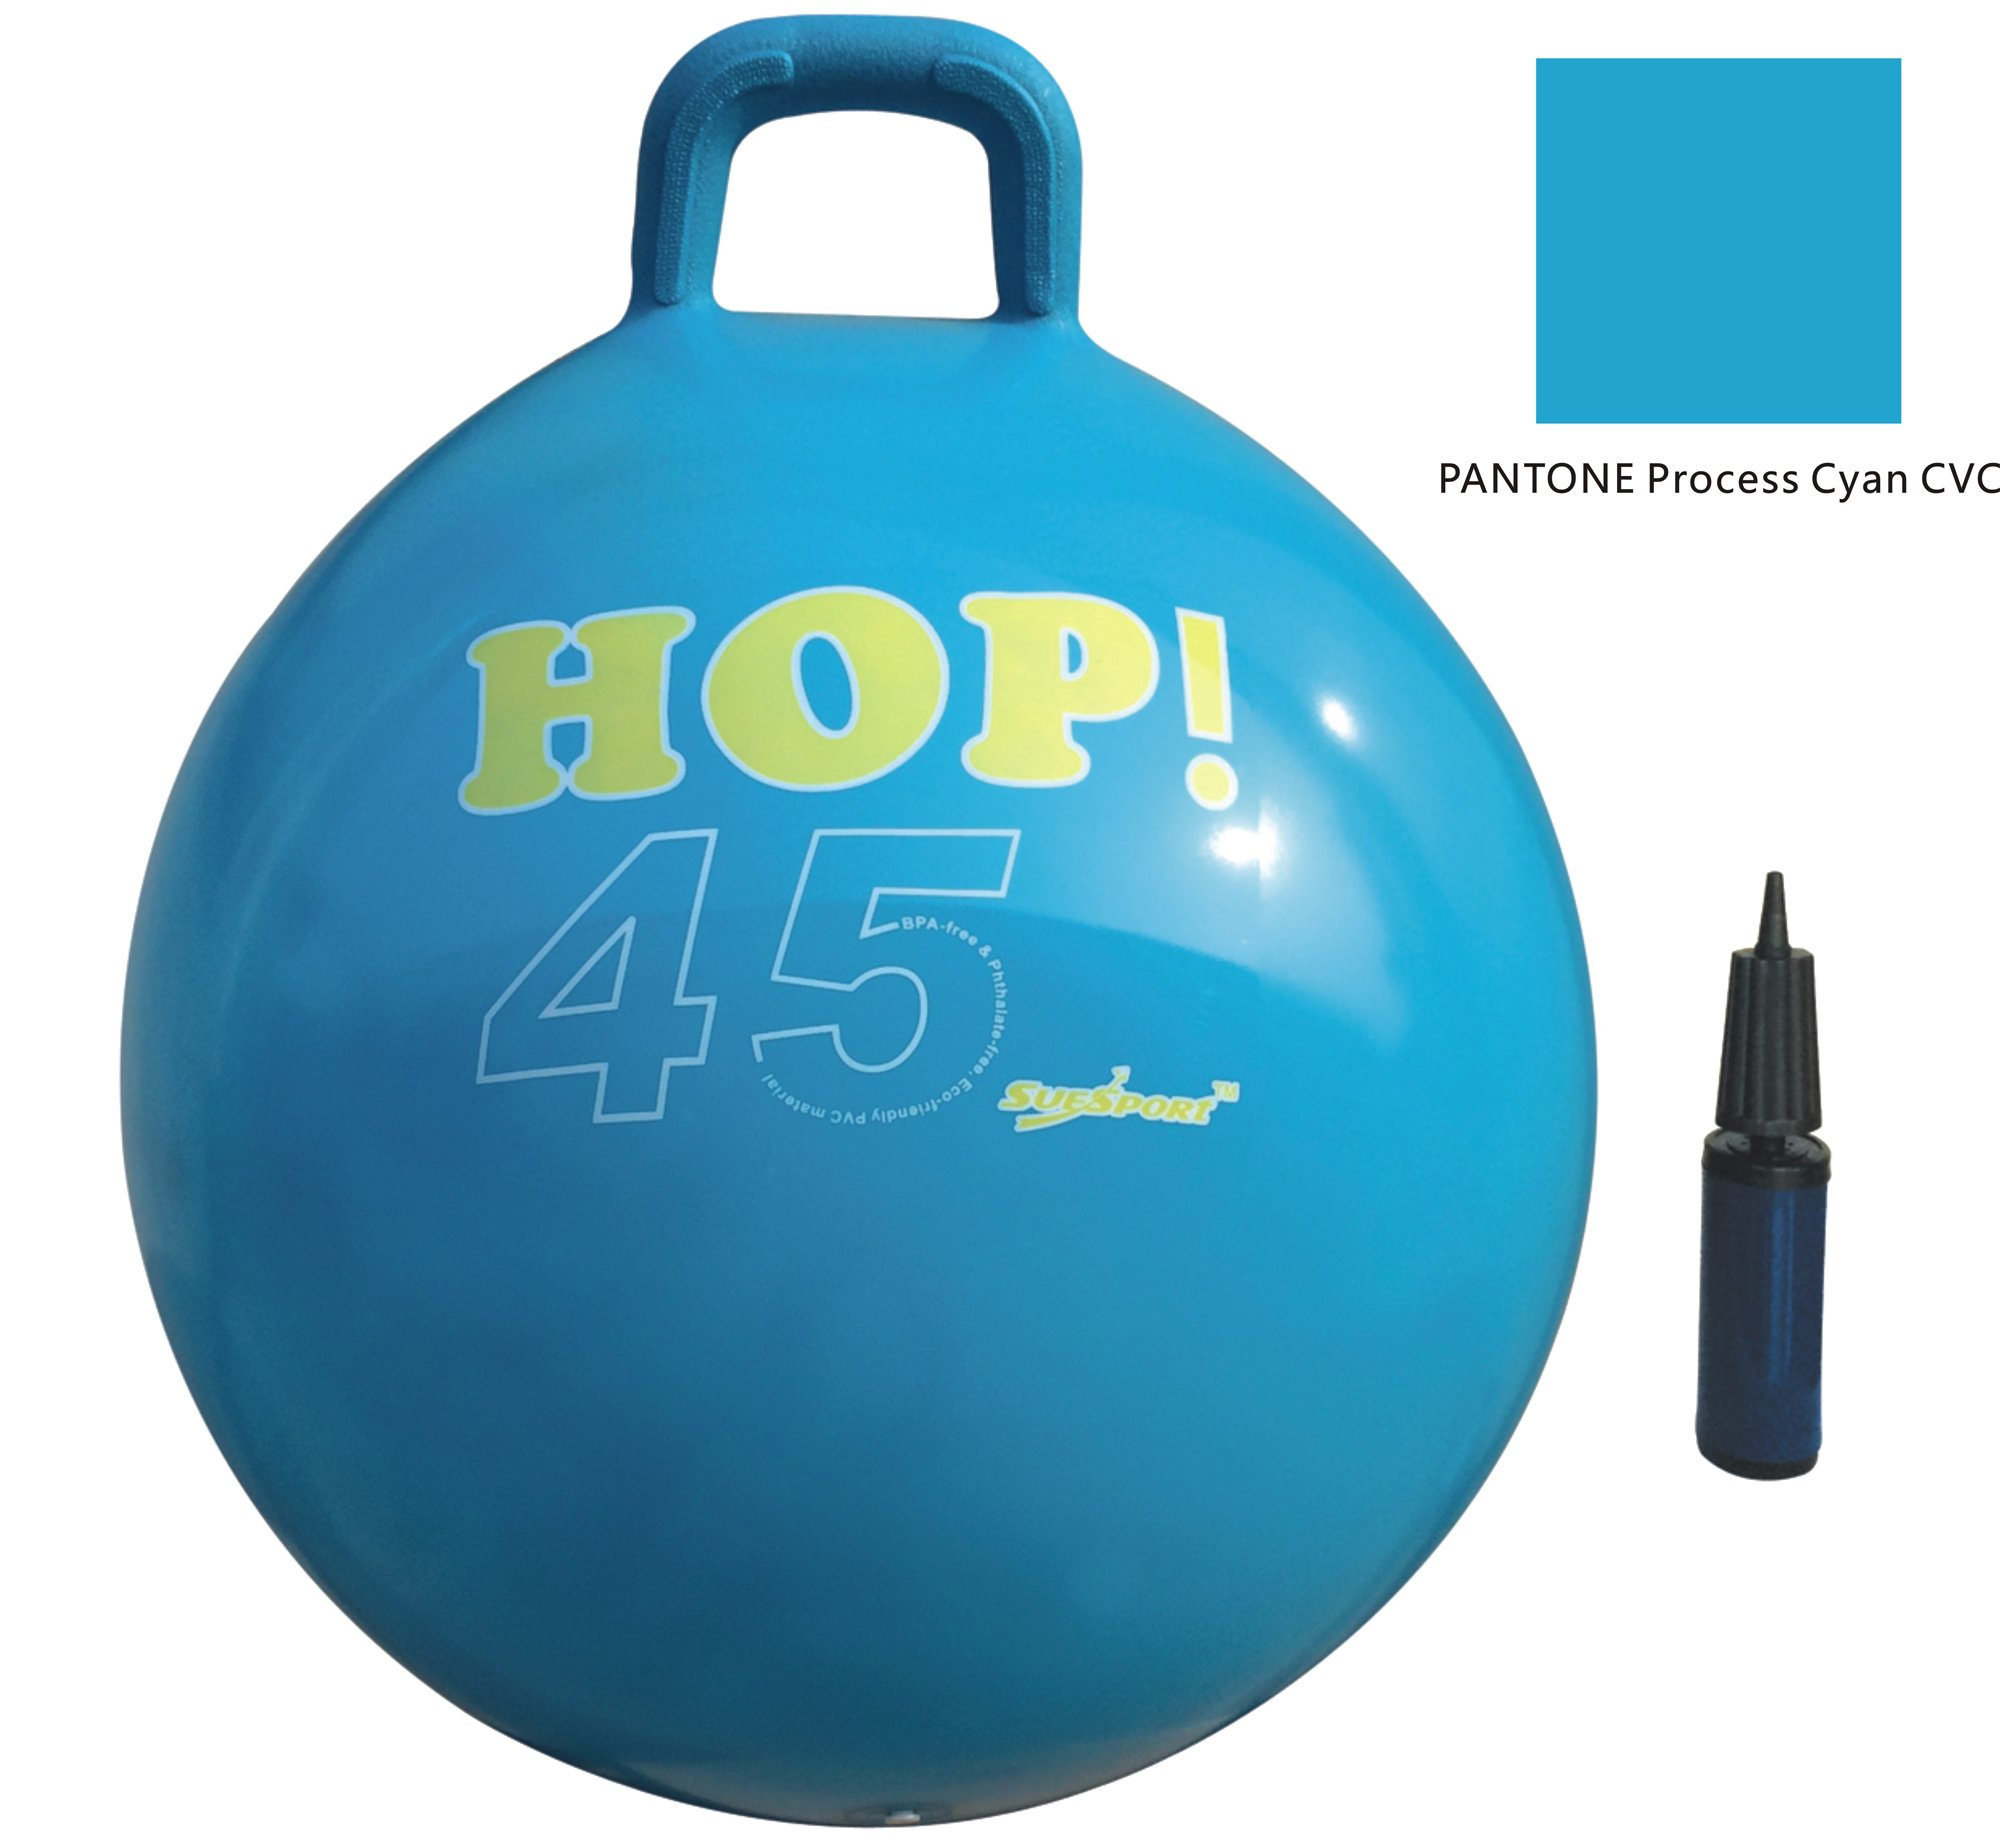 SUESPORT Hopper Ball Kit,Pump Included, 18in/45cm, Blue, Hop Ball, Kangaroo Bouncer, Hoppity Hop, Sit and Bounce, Jumping Ball, 2-Size by 3-Colors Available